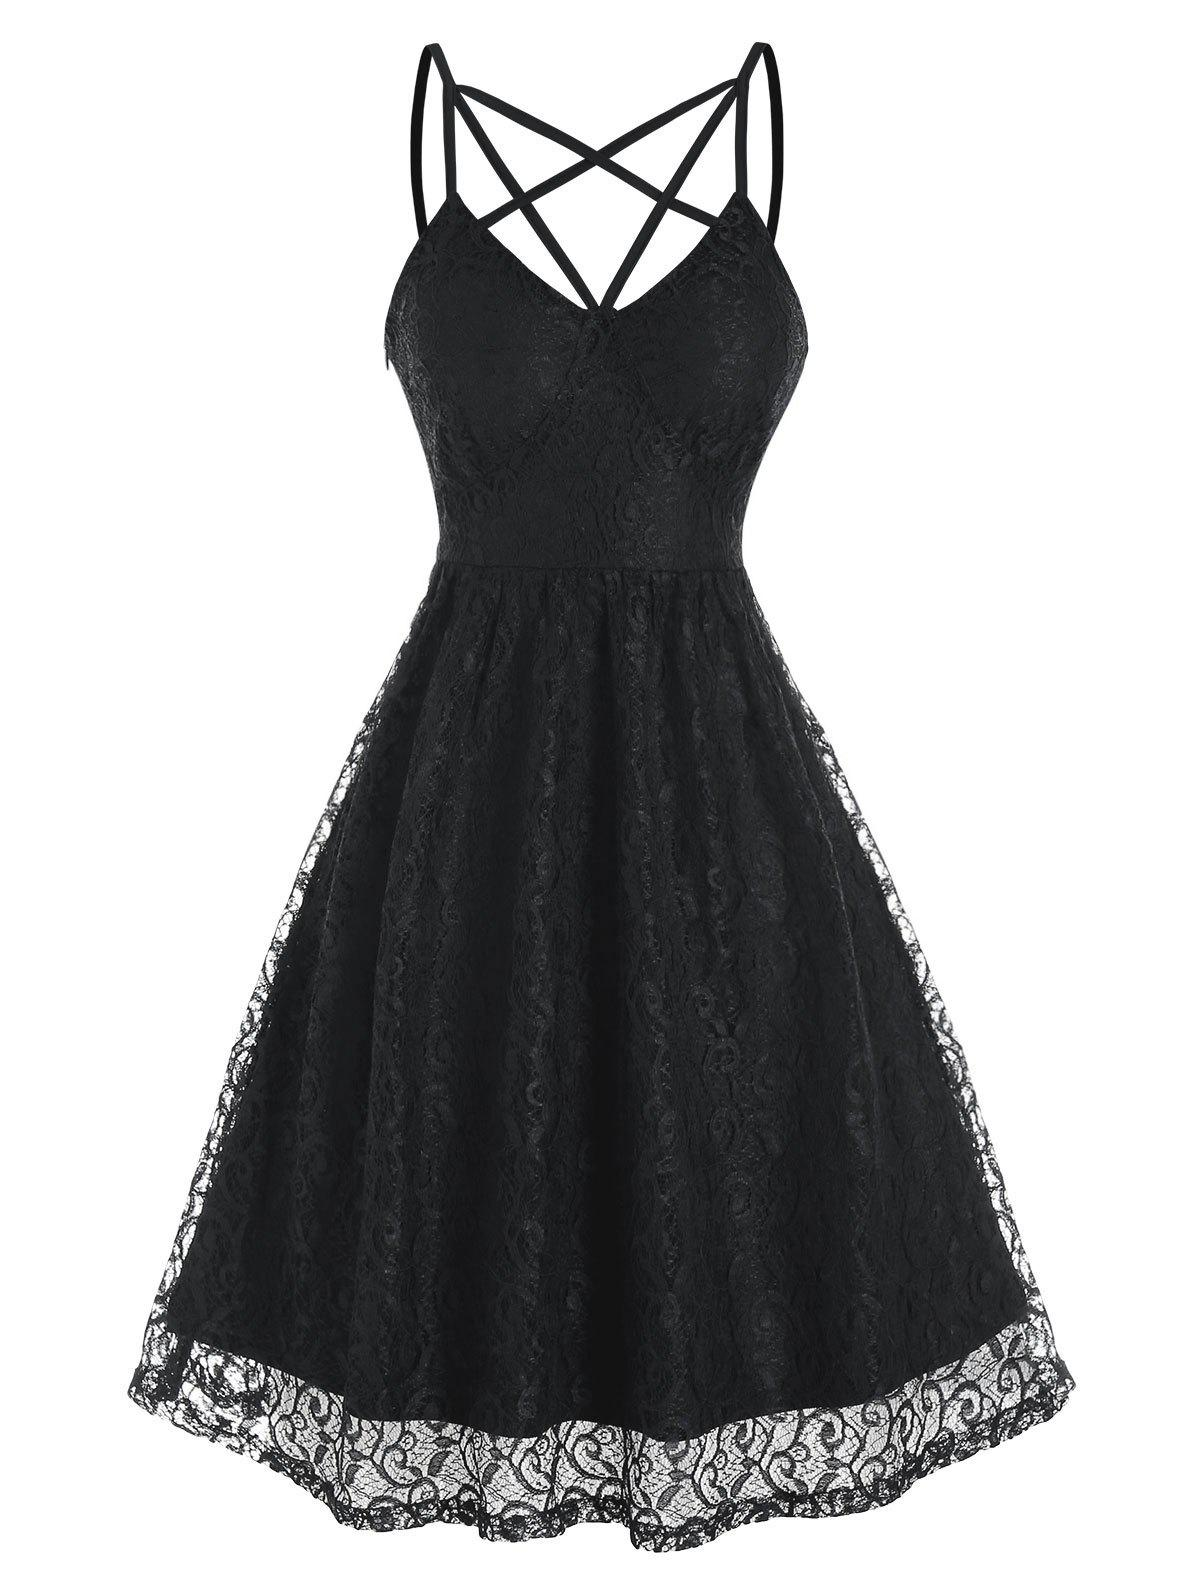 Fancy Strappy Sleeveless Lace Party Dress